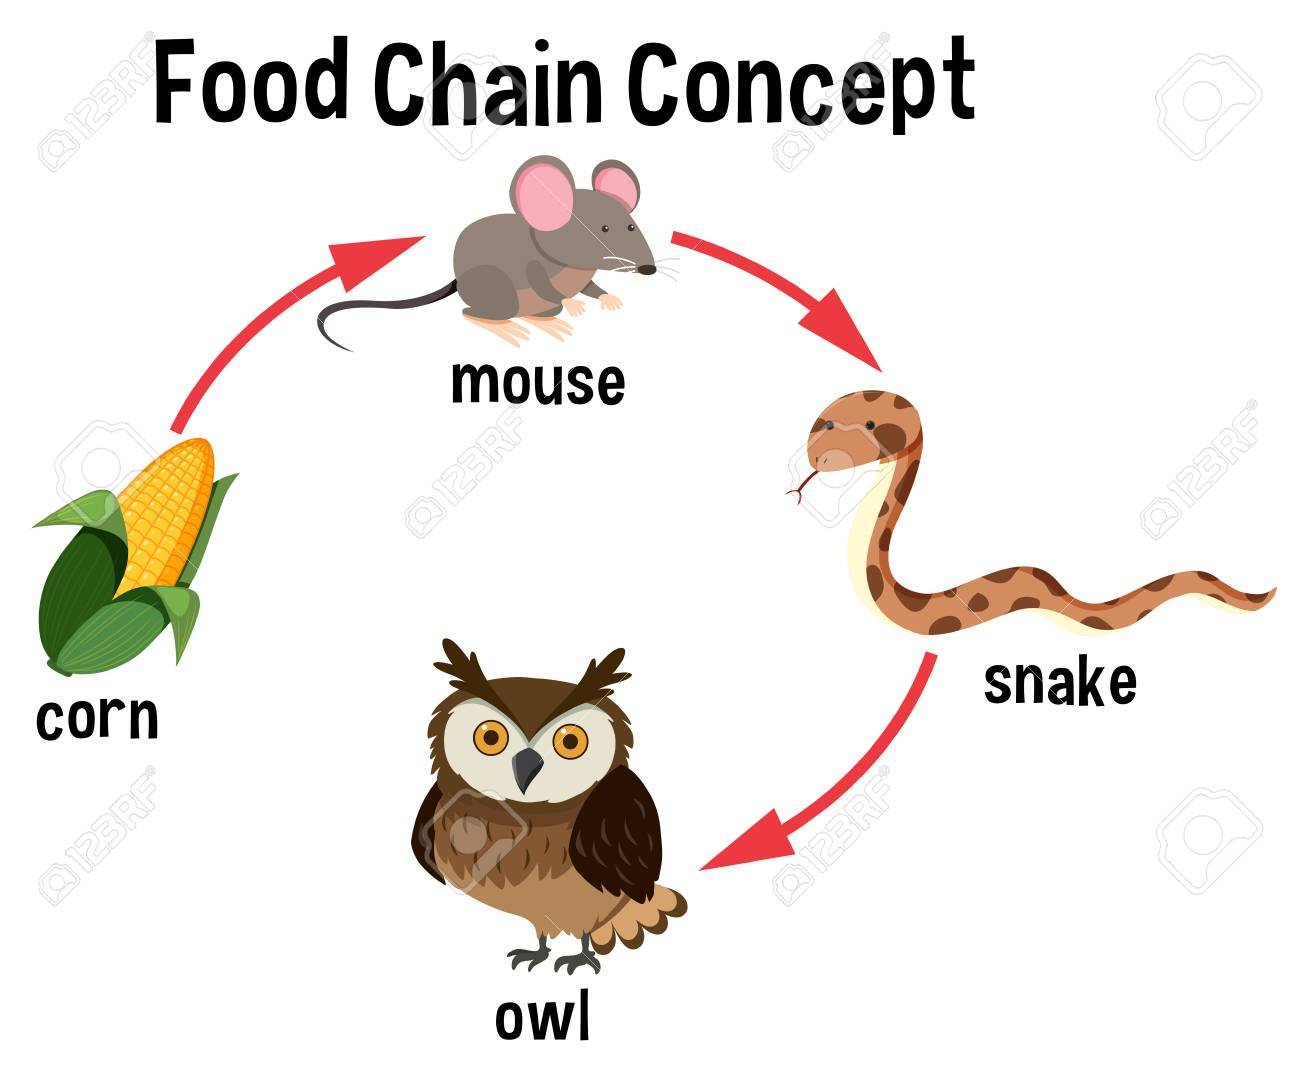 Food Chain Concept Diagram Illustration Royalty Free Cliparts, Vectors, And  Stock Illustration. Image 104709834.123RF.com